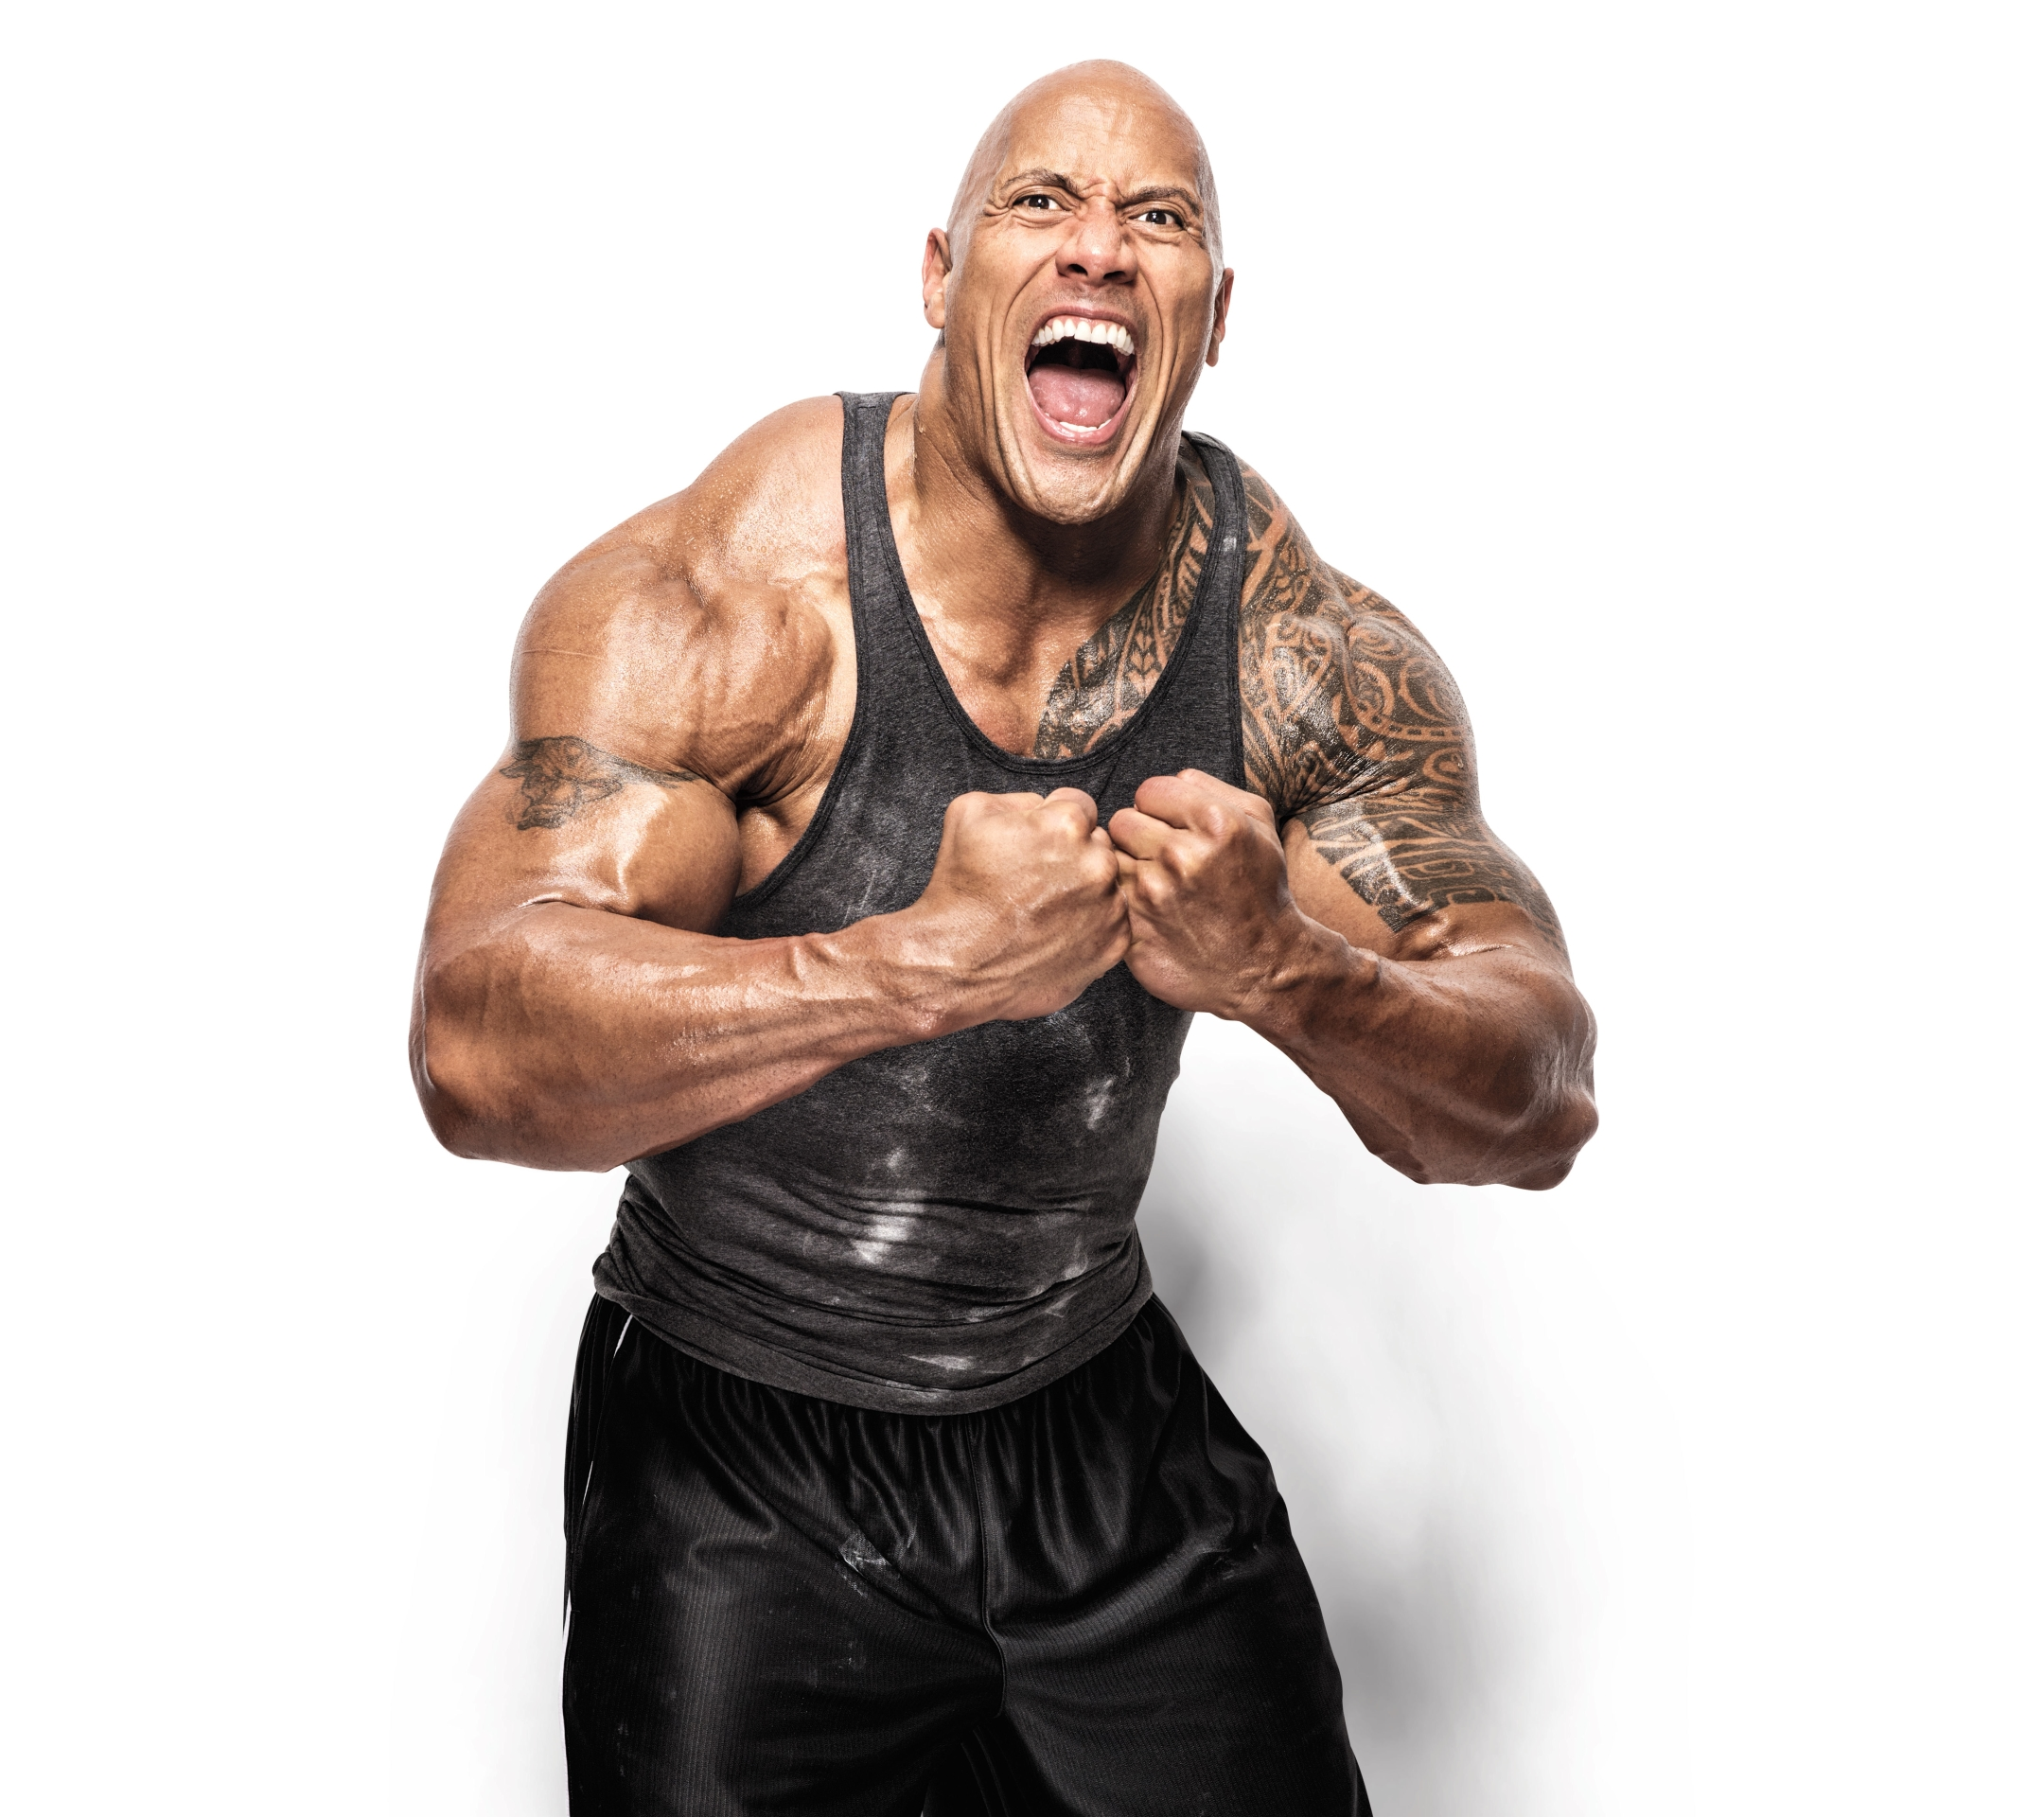 dwayne johnson wallpaper mobile